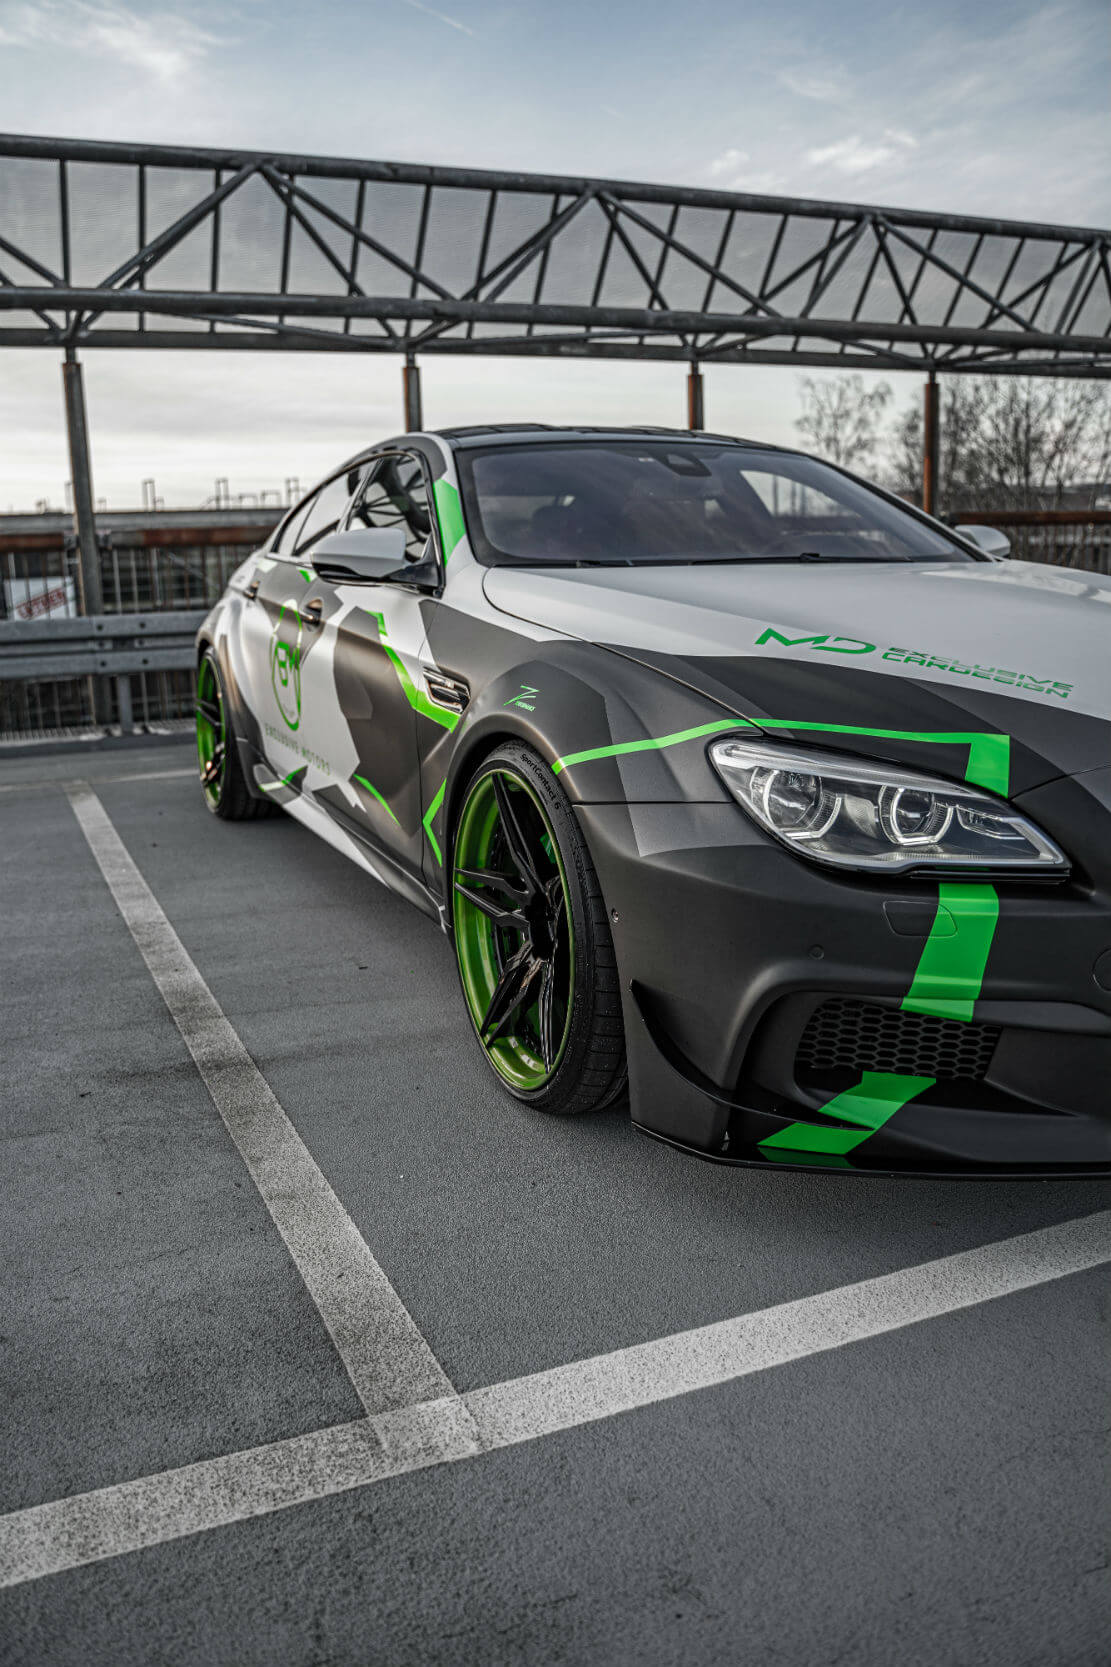 Bmw M6 F06 Gran Coupe Alloy Wheels Z Performance Wheels Zp Forged 21 Custom Gloss Black Custom Lime Green Lip In 10x21 11 5x21 M D Exclusive Cardesign